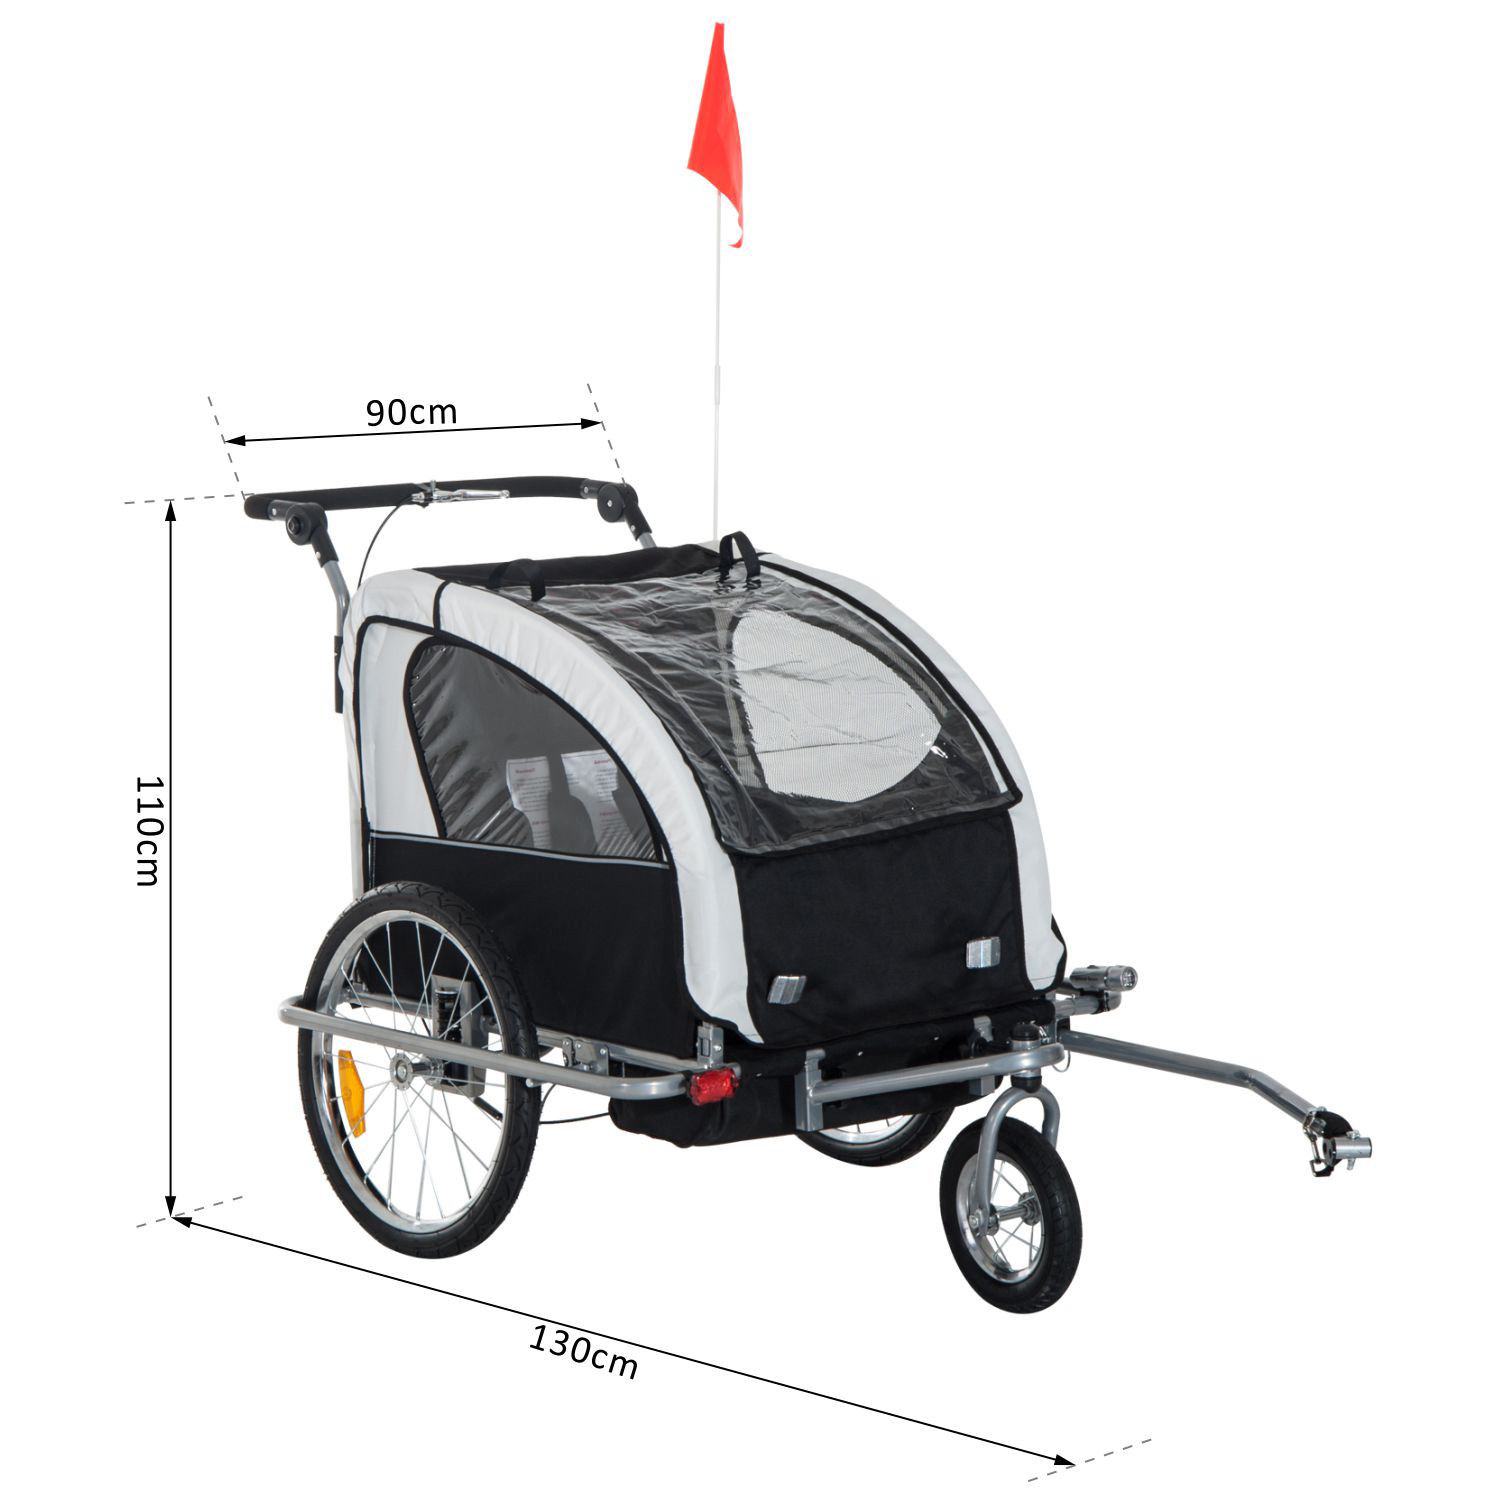 2-Seater-Child-Bike-Trailer-Kids-Carrier-Safety-Harness-Baby-Stroller-Jogger thumbnail 15